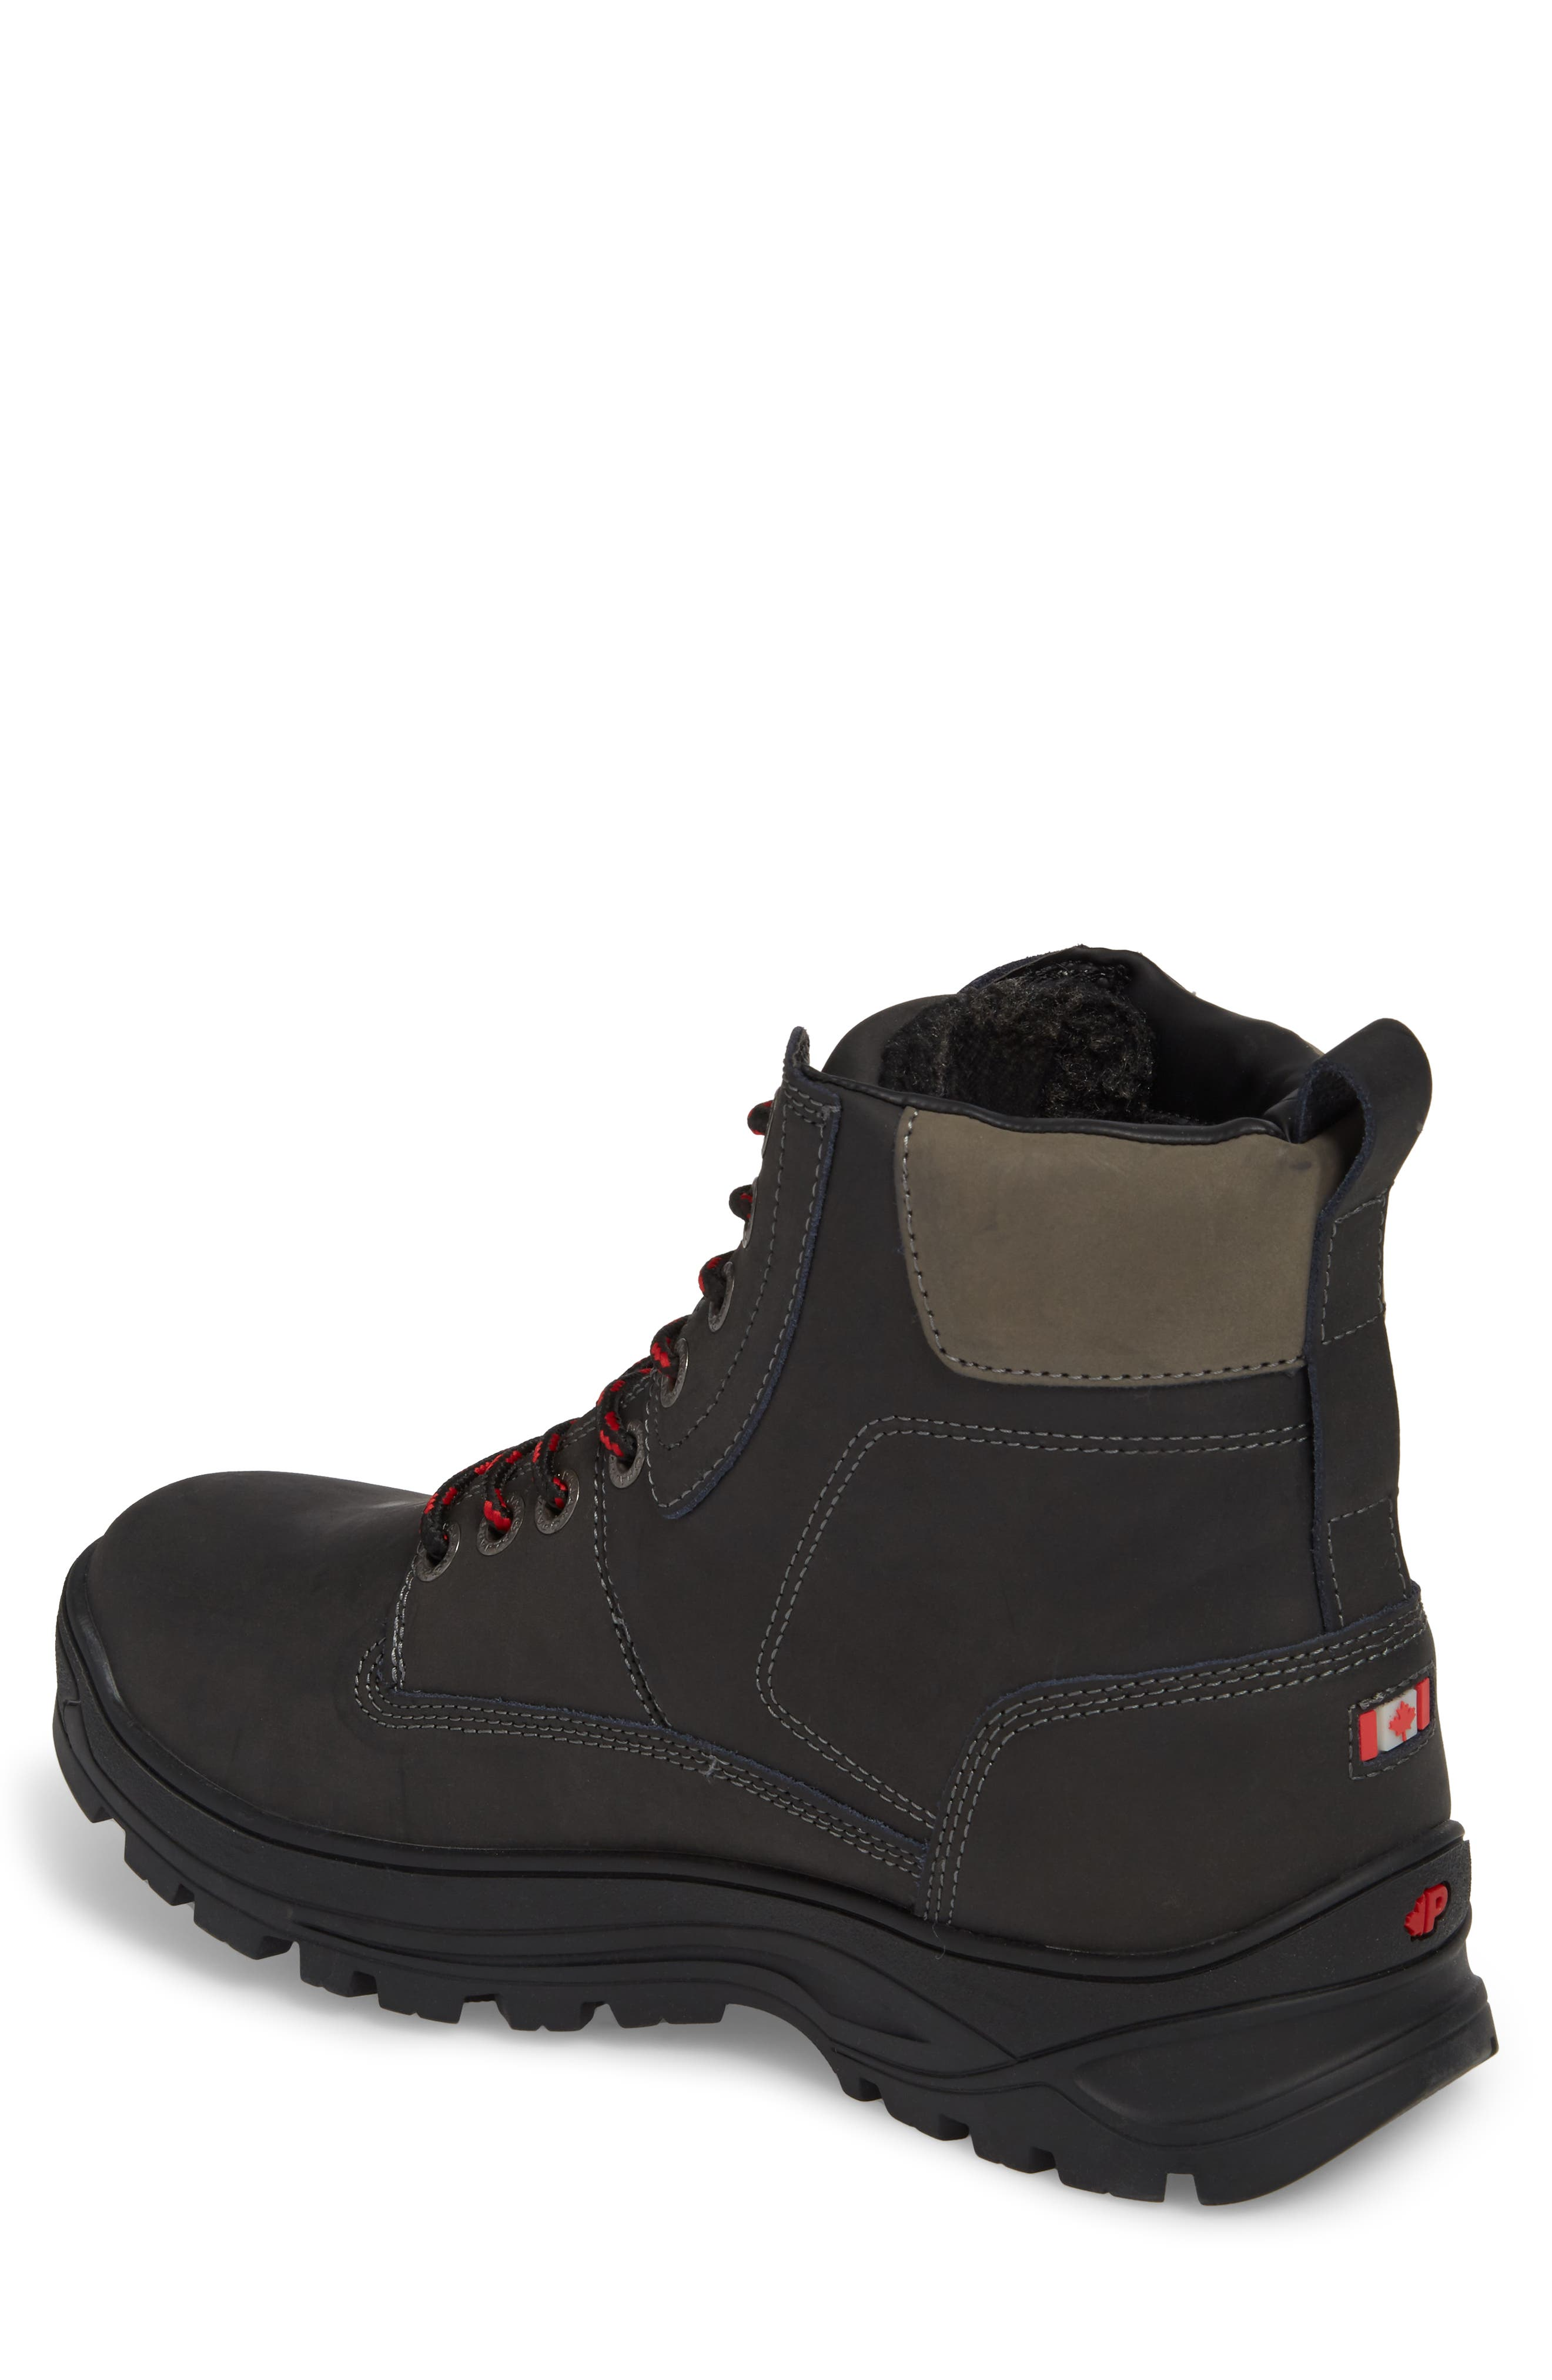 Imani Waterproof Insulated Boot,                             Alternate thumbnail 2, color,                             Black Leather